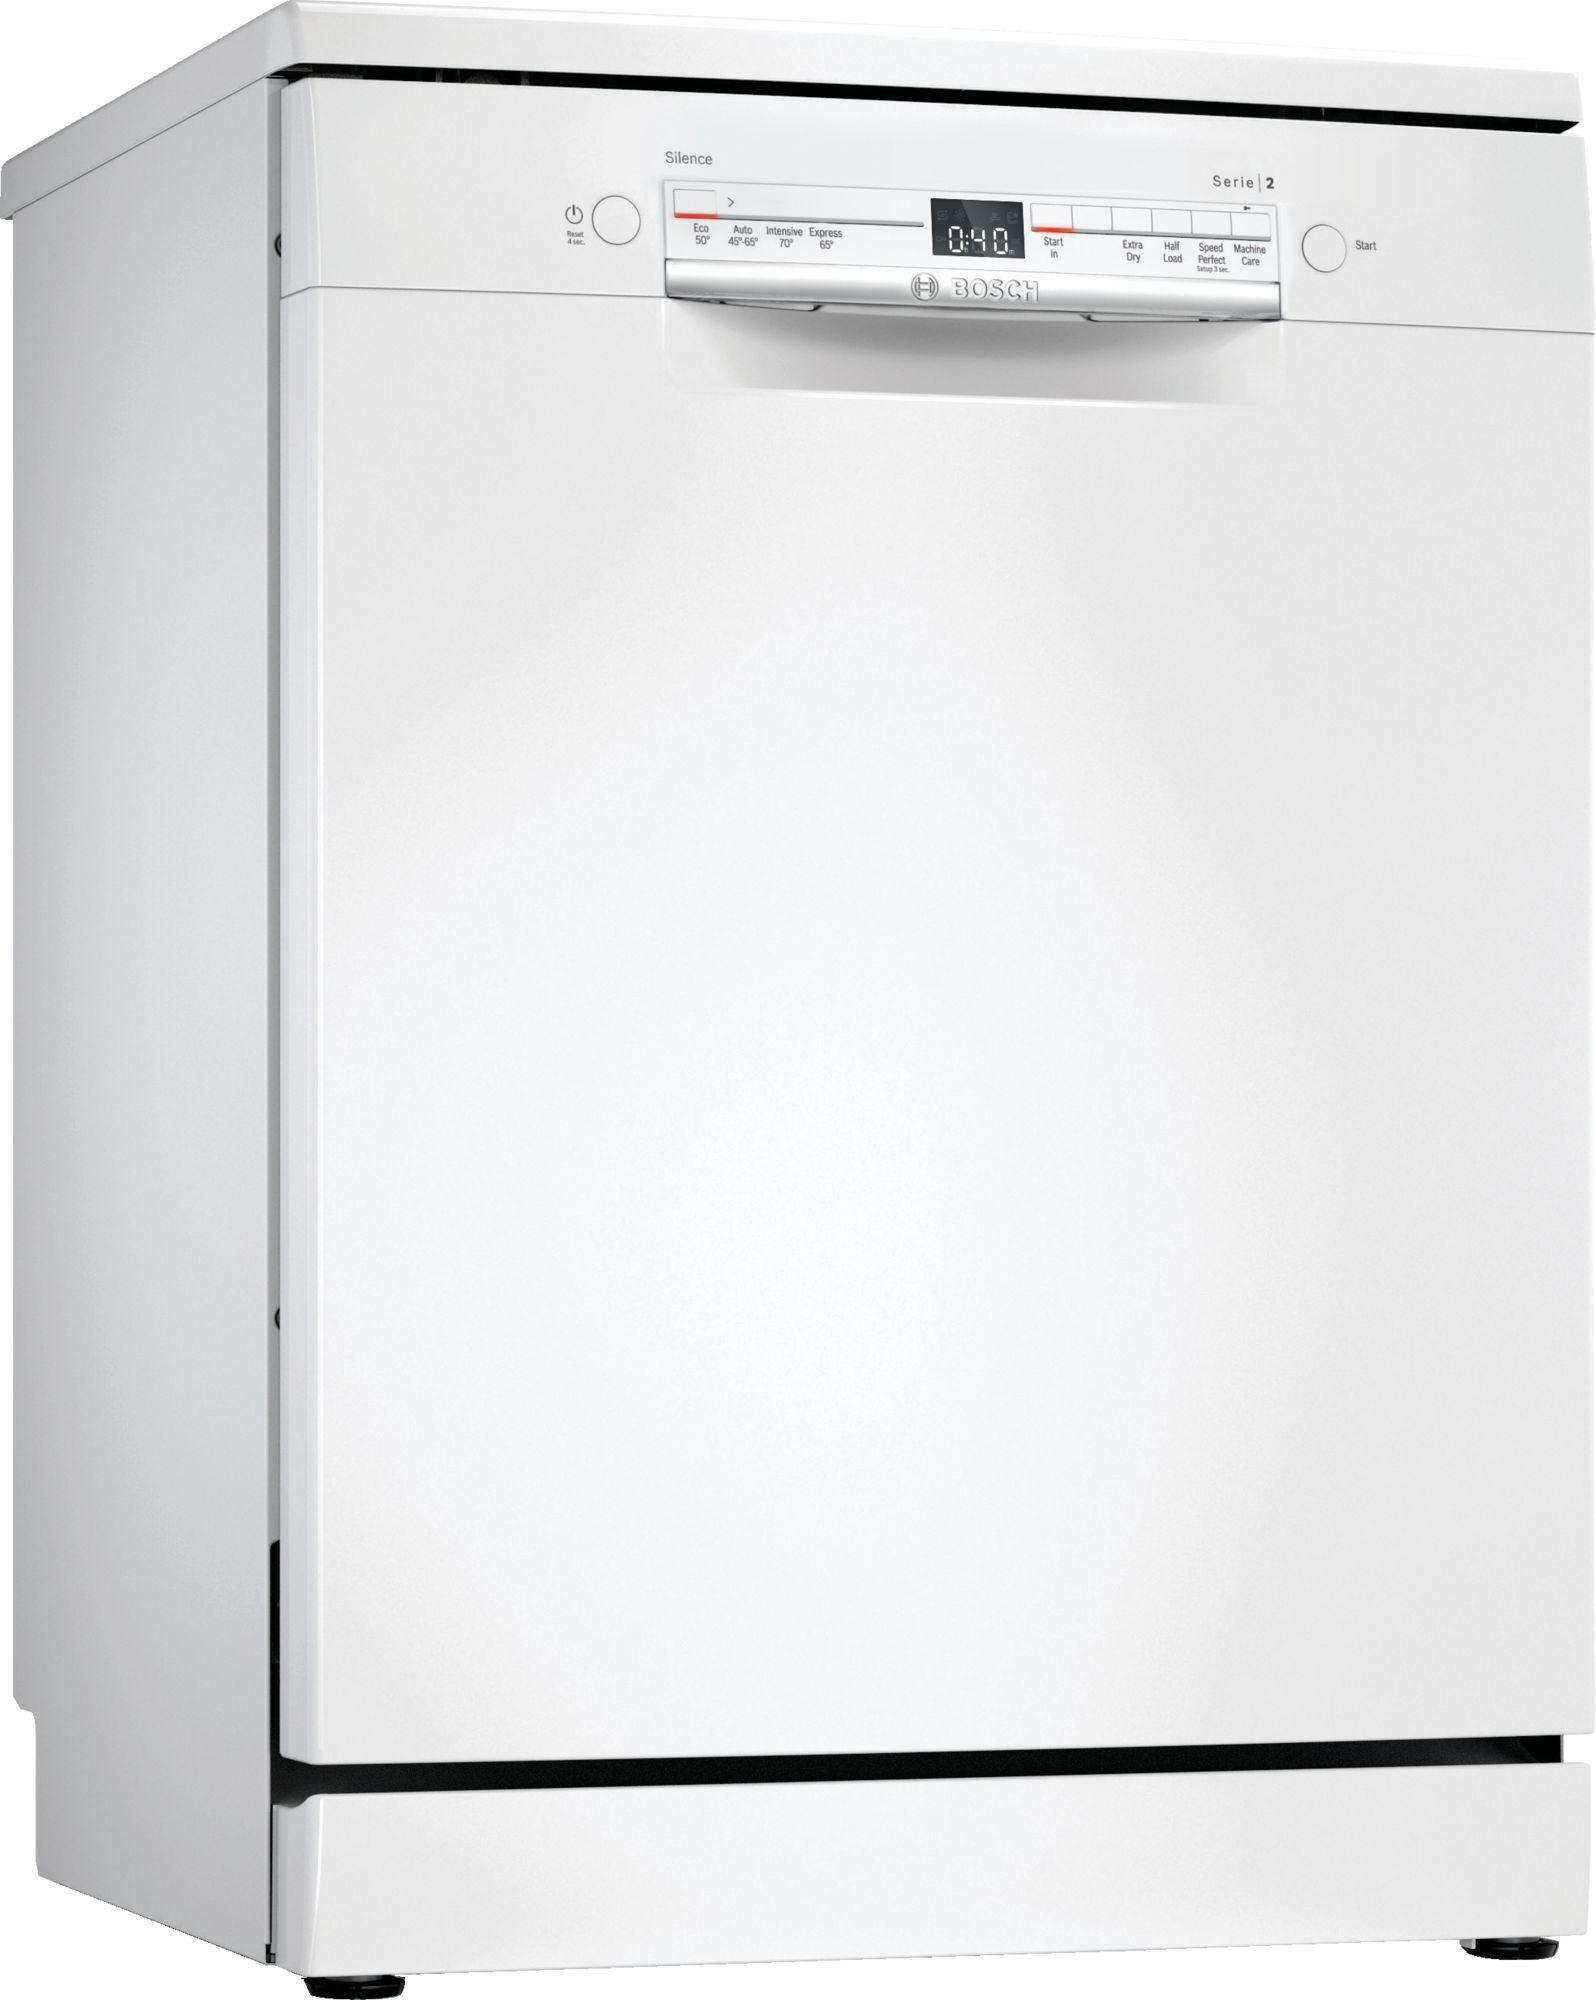 Image of Serie 2 SGS2ITW41G 60cm Standard Dishwasher   White